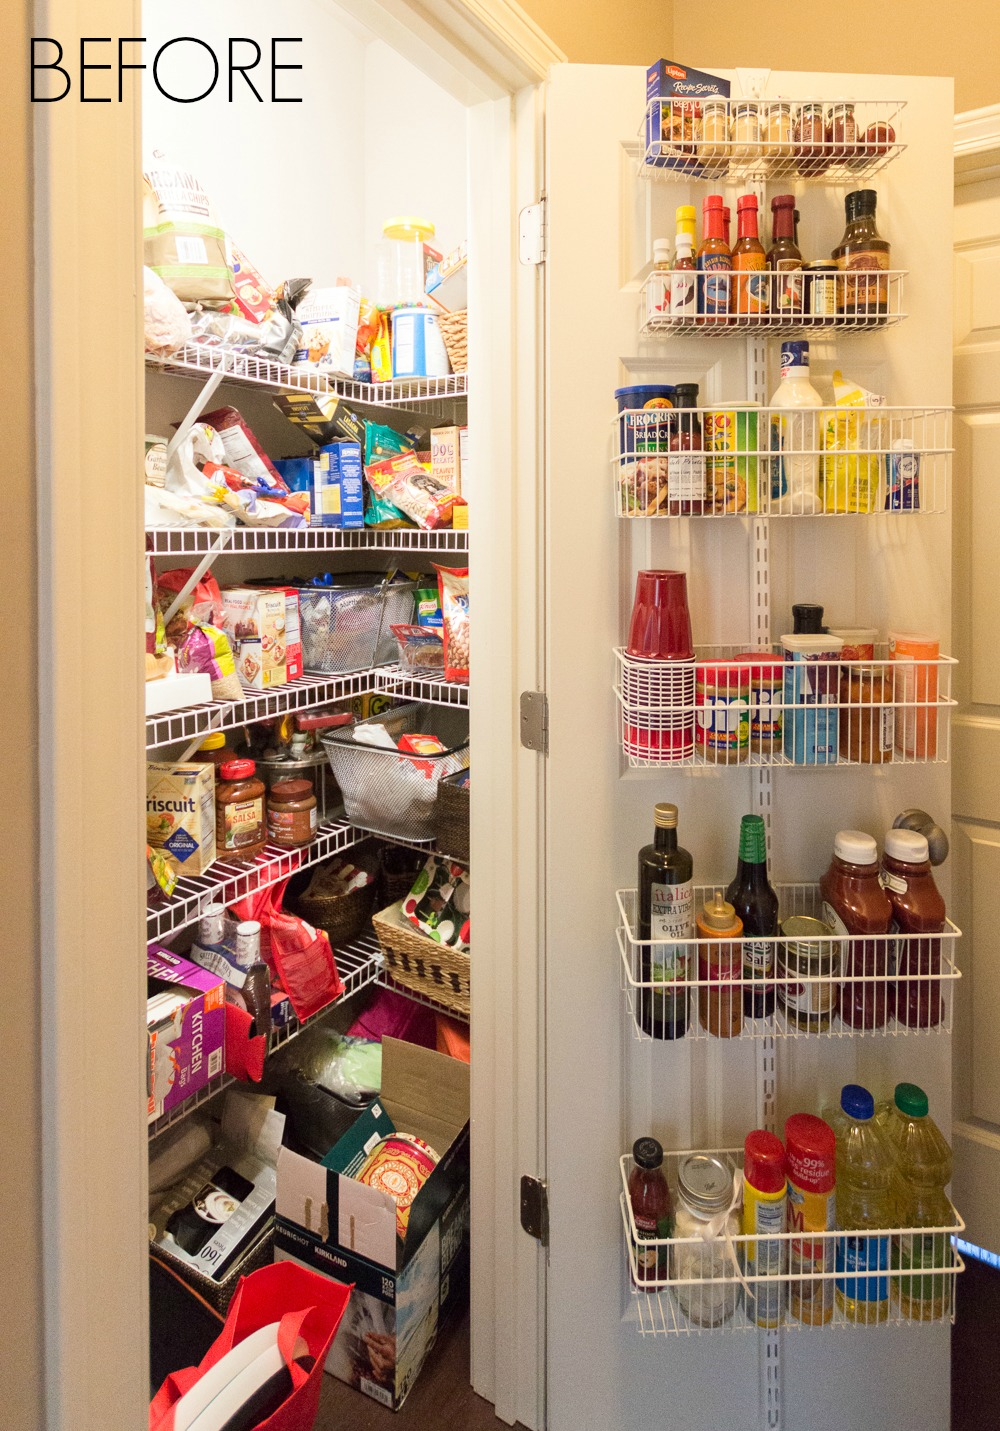 How To Organize Pantry With Wire Shelves